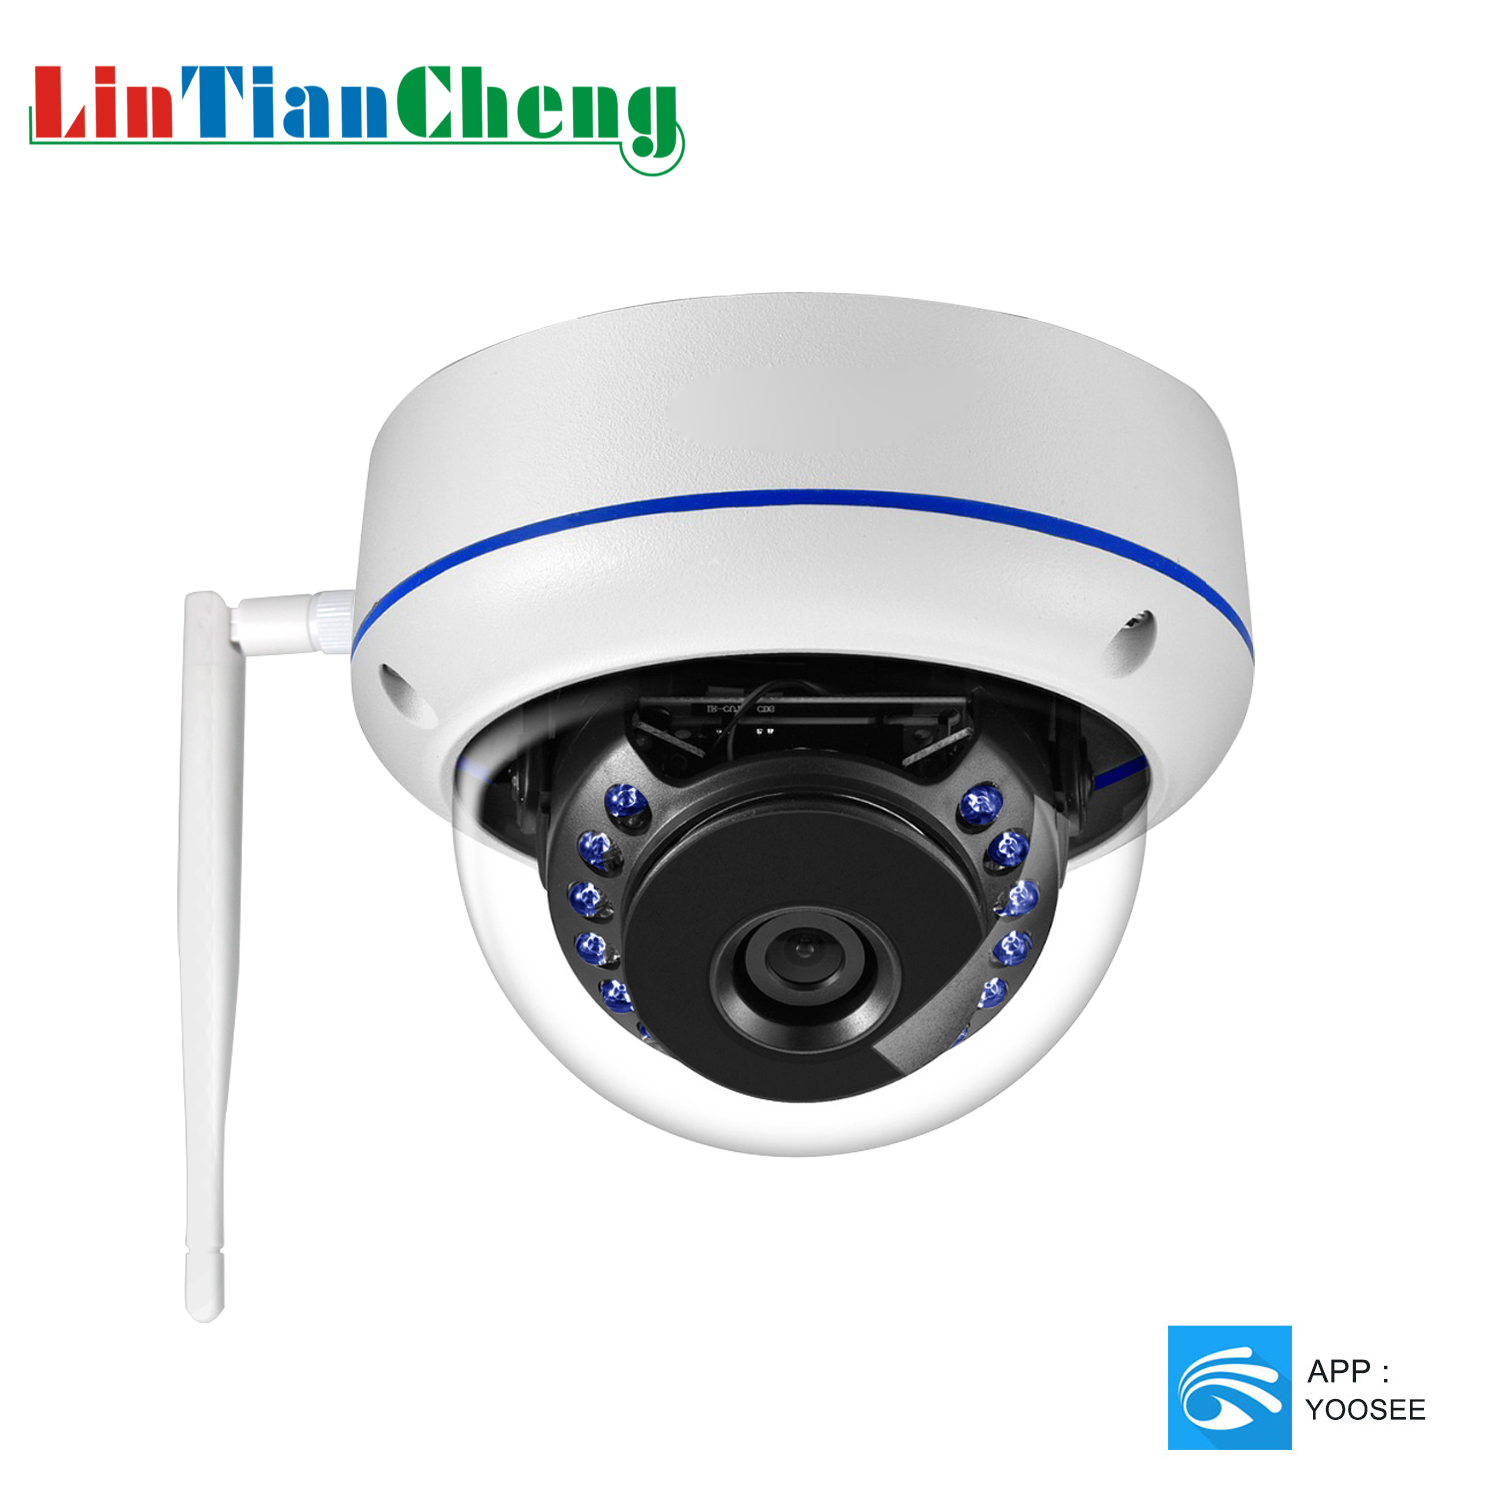 2019 Wifi IP Kamera Dome 1080P HD IR Nachtsicht Home Security CCTV Überwachung Kamera Wireless Indoor-Monitor Cam yoosee APP